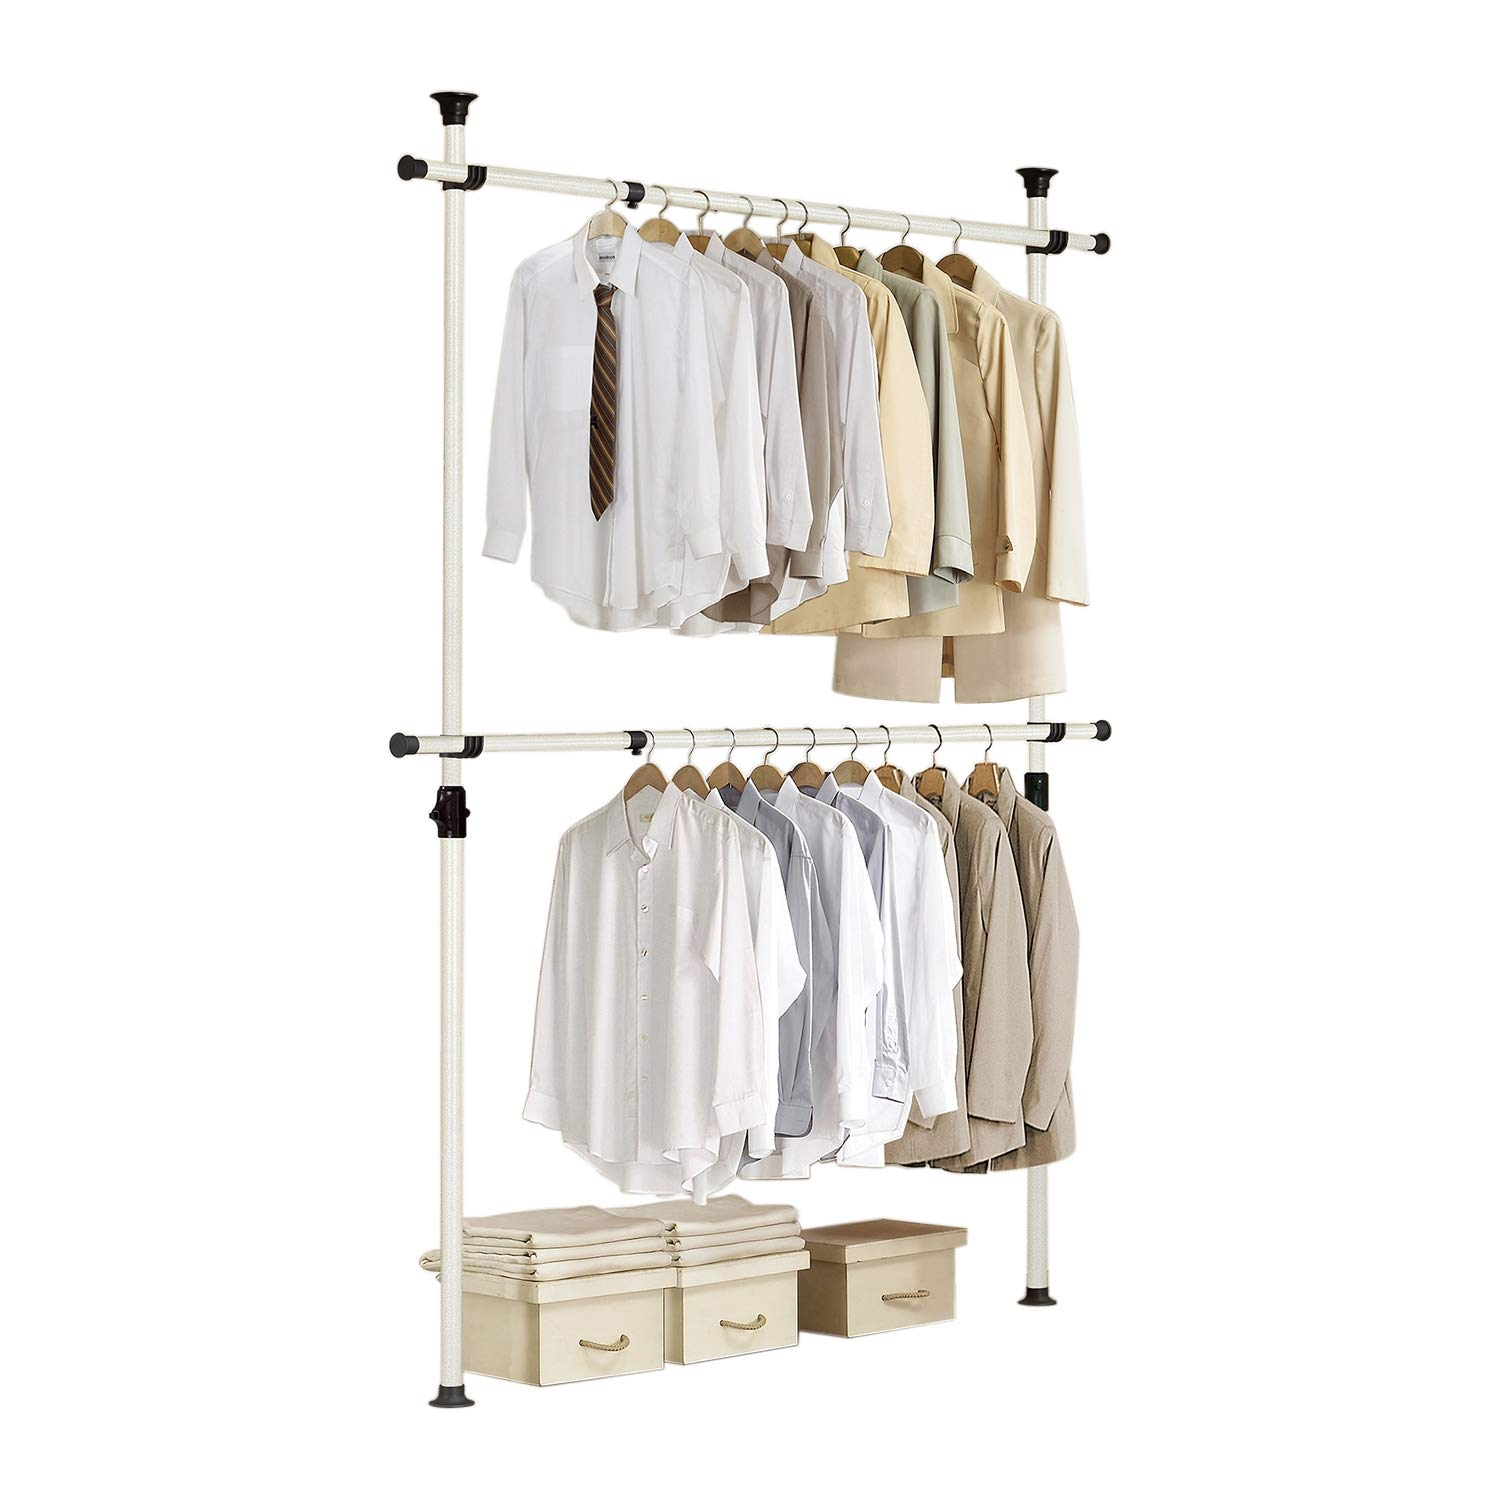 Prince Hanger One Touch Double Adjustable Standing Multifunction Stand Holding 80kg176lb Per Horizontal Bar Heavy Duty 38mm Vertical Pole Clothing Rack